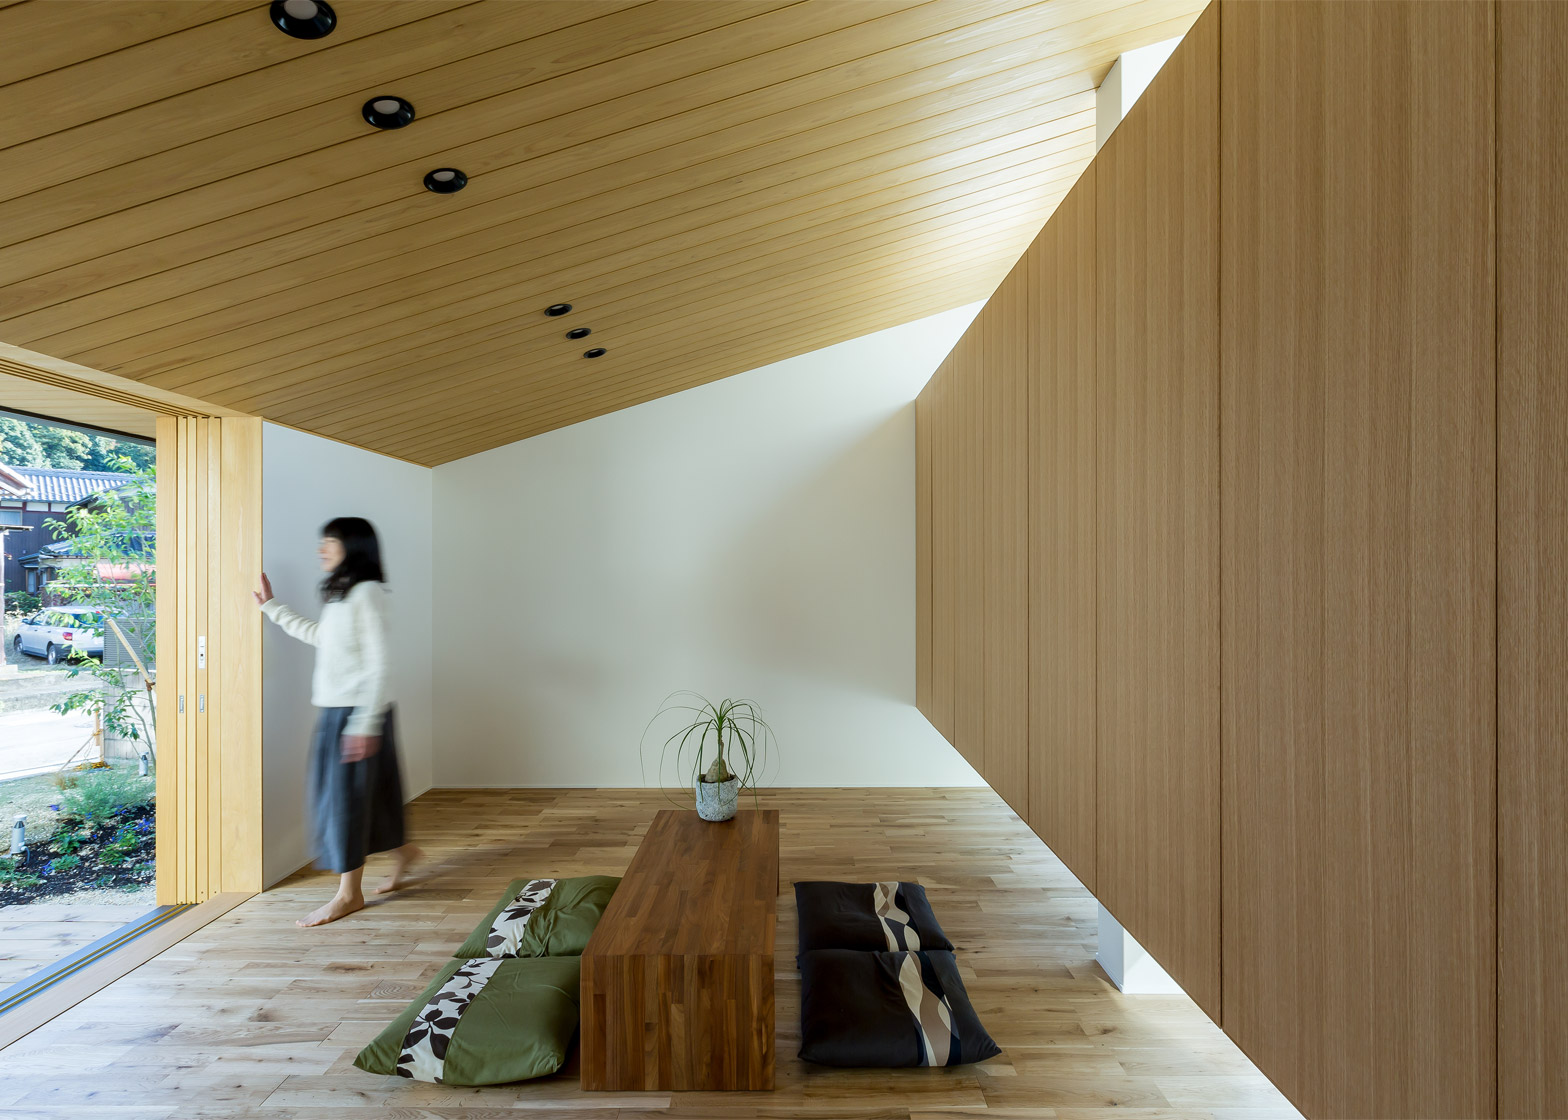 Maibara house by Alts Design Office